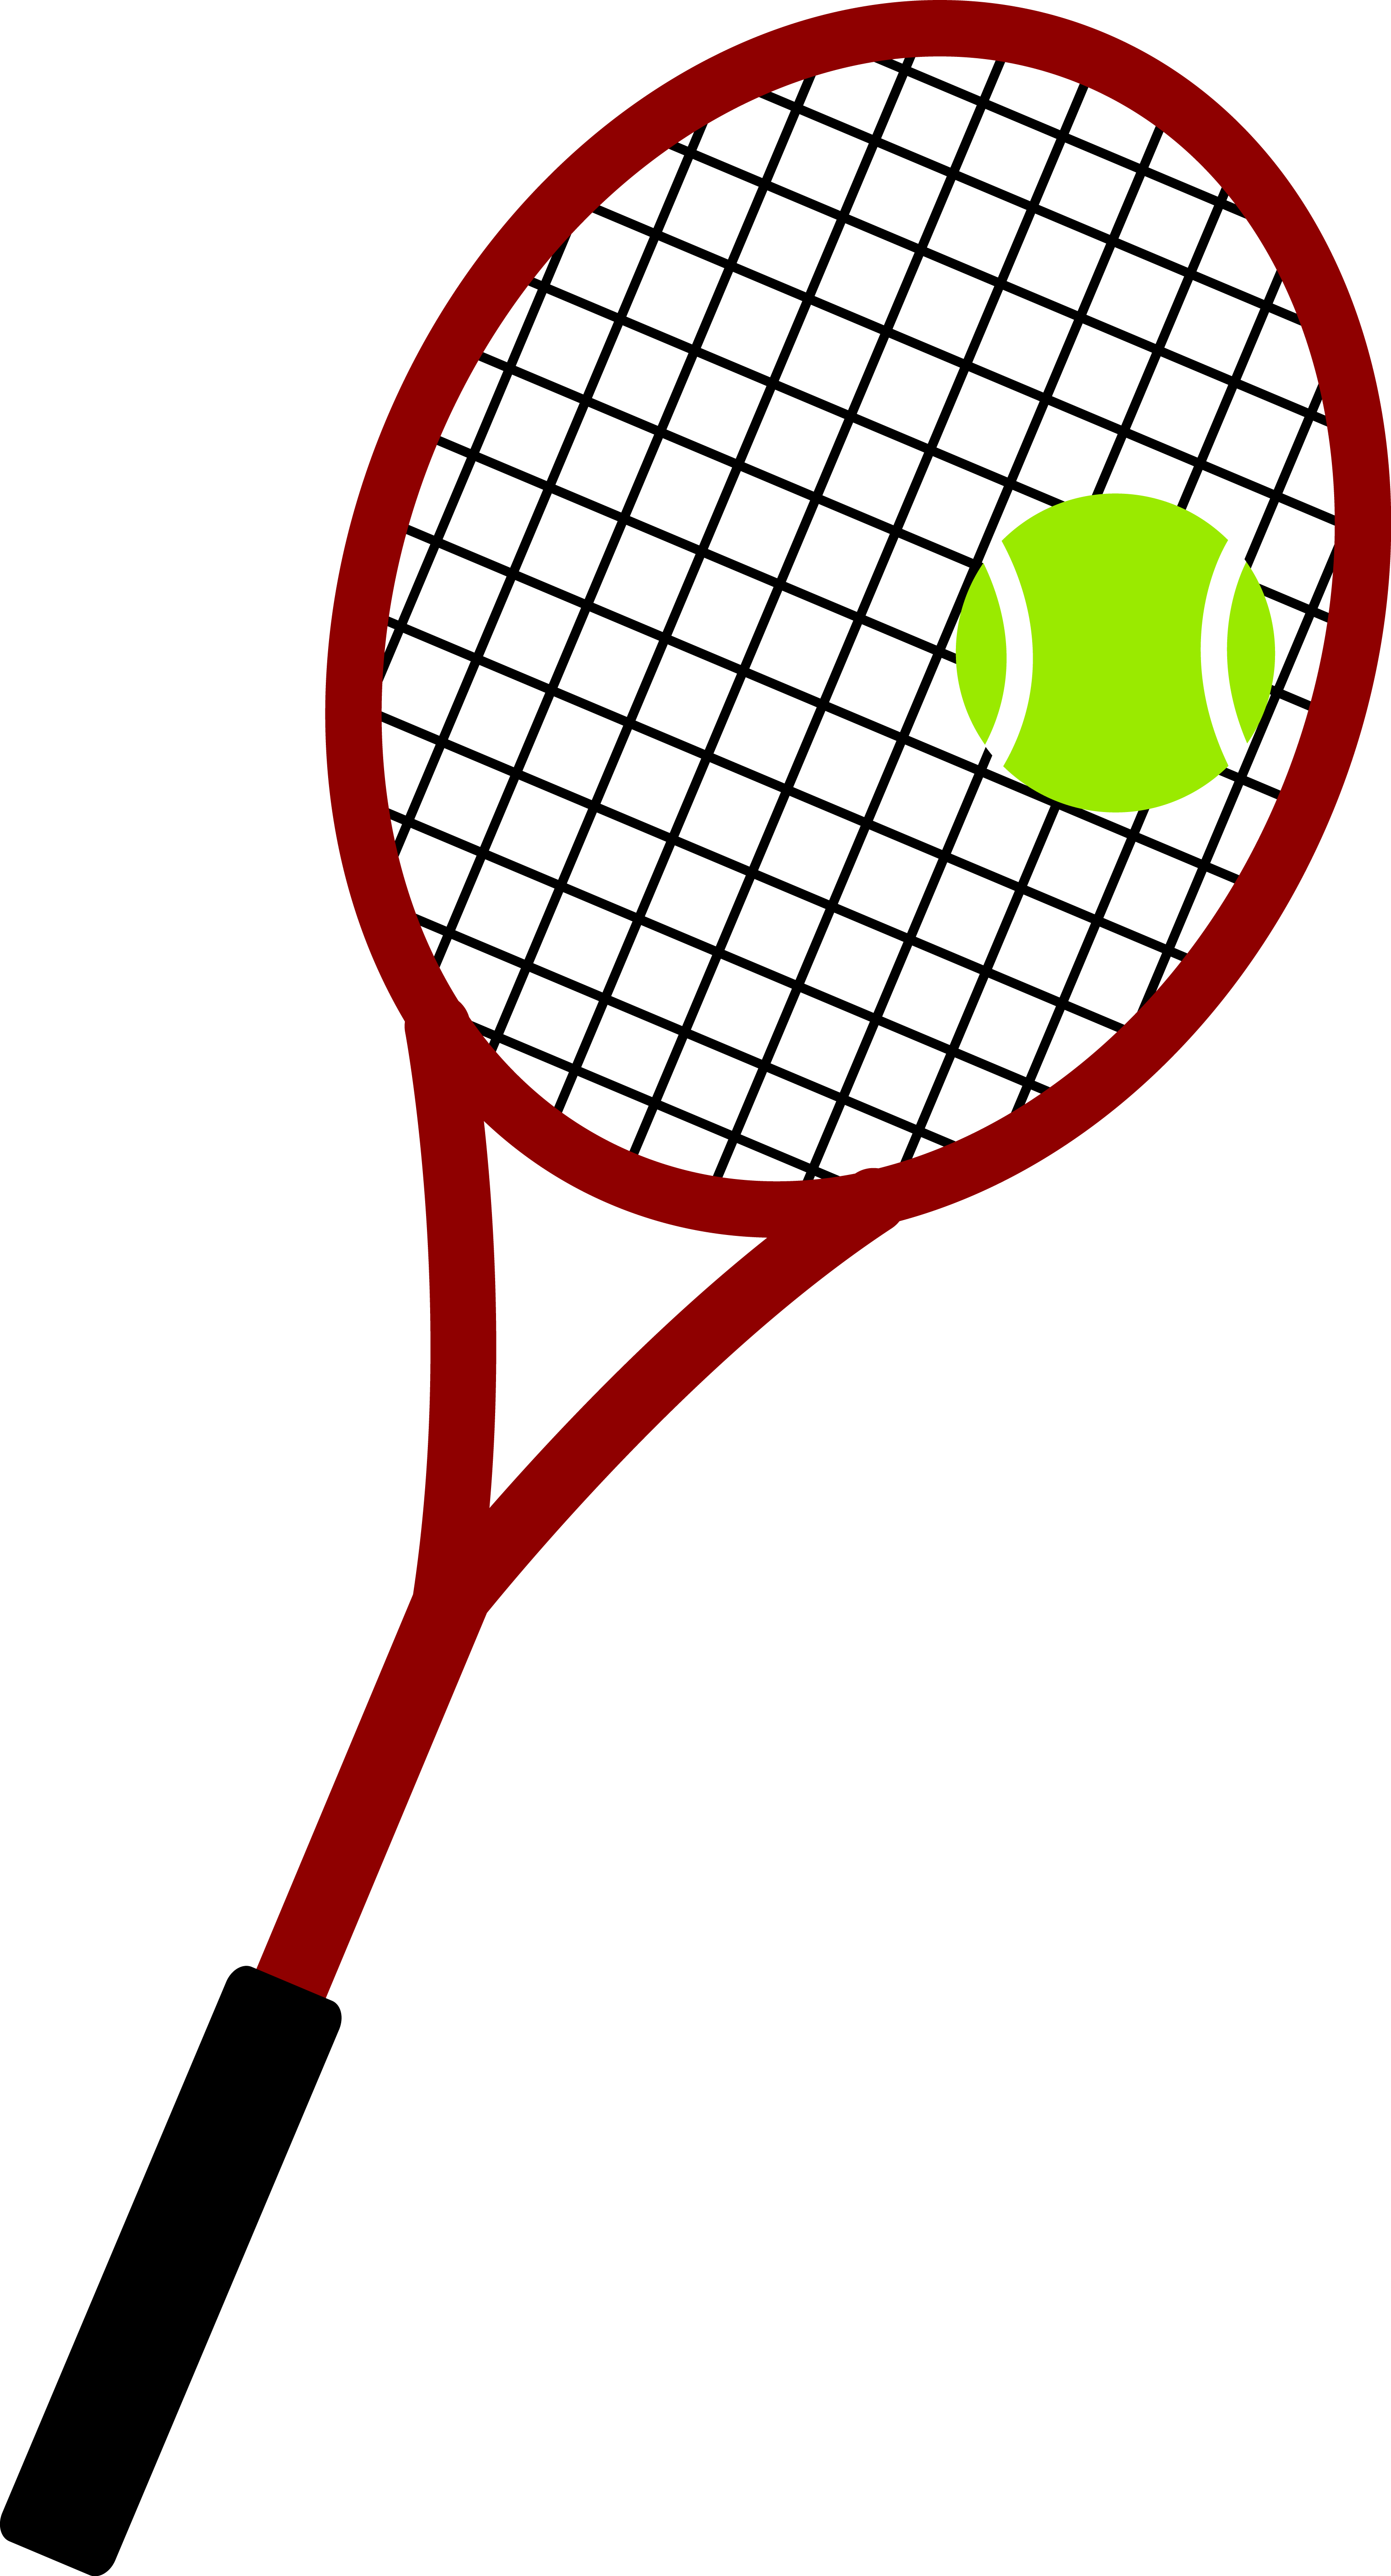 svg black and white download Tennis clipart.  collection of high